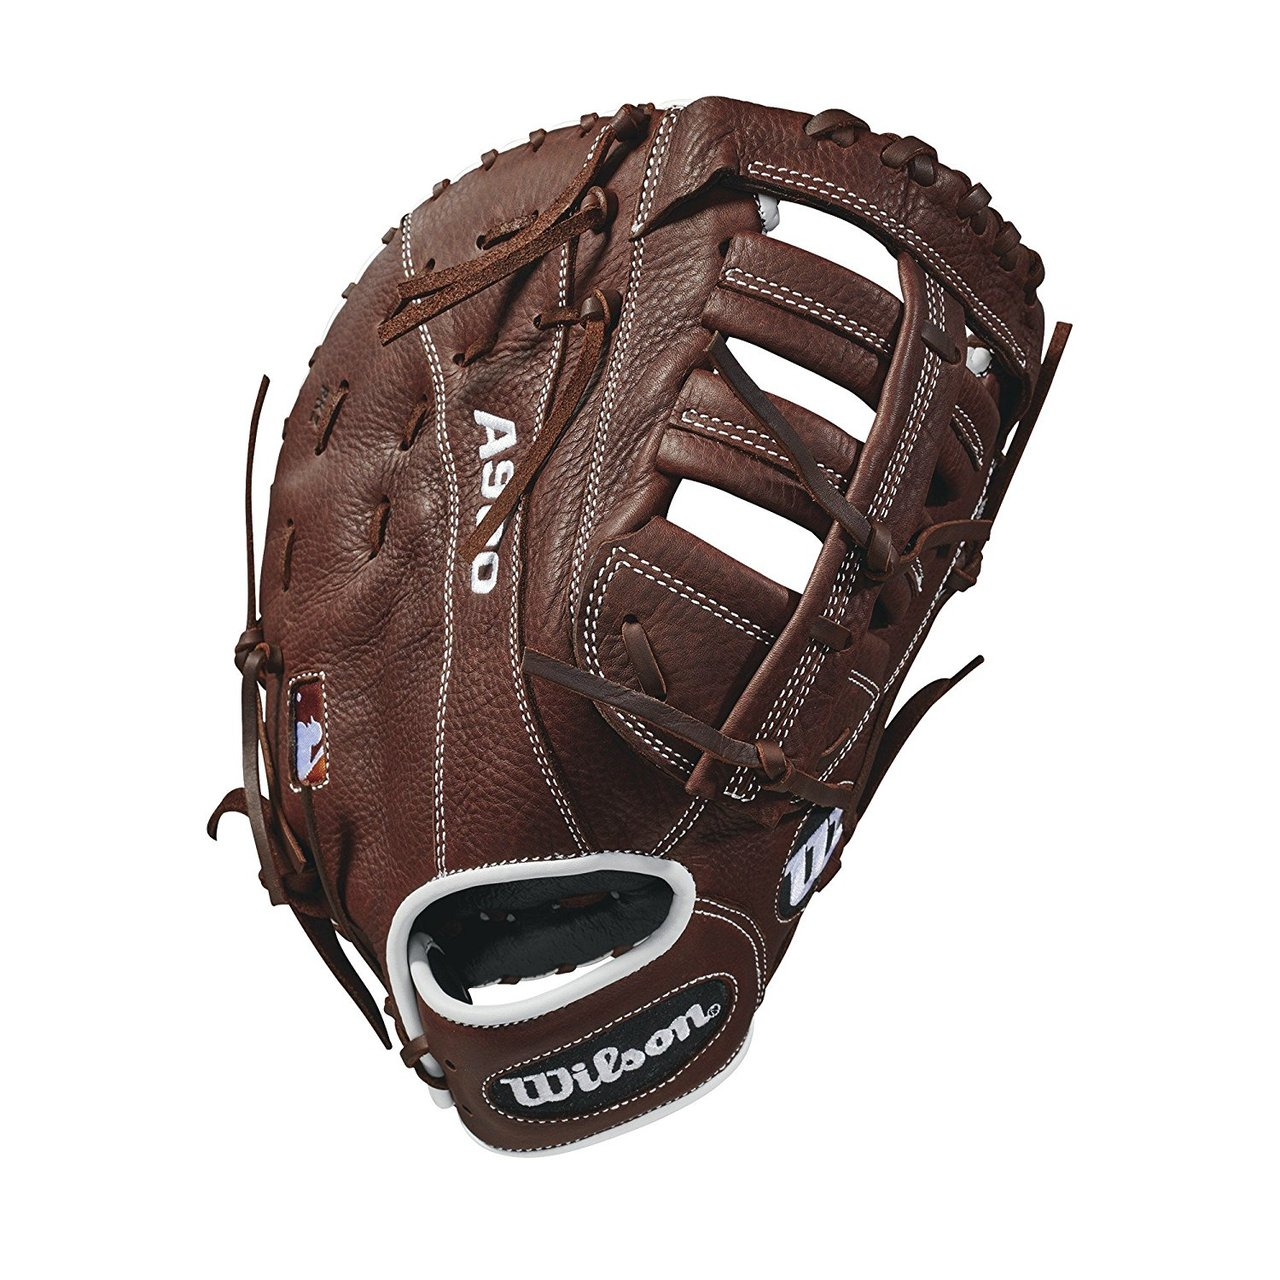 wilson-2018-a900-first-base-mitt-12-inch-right-hand-throw WTA09RB18BM12-RightHandThrow Wilson 887768593926 Wilson youth first base mitts are intended for a younger more